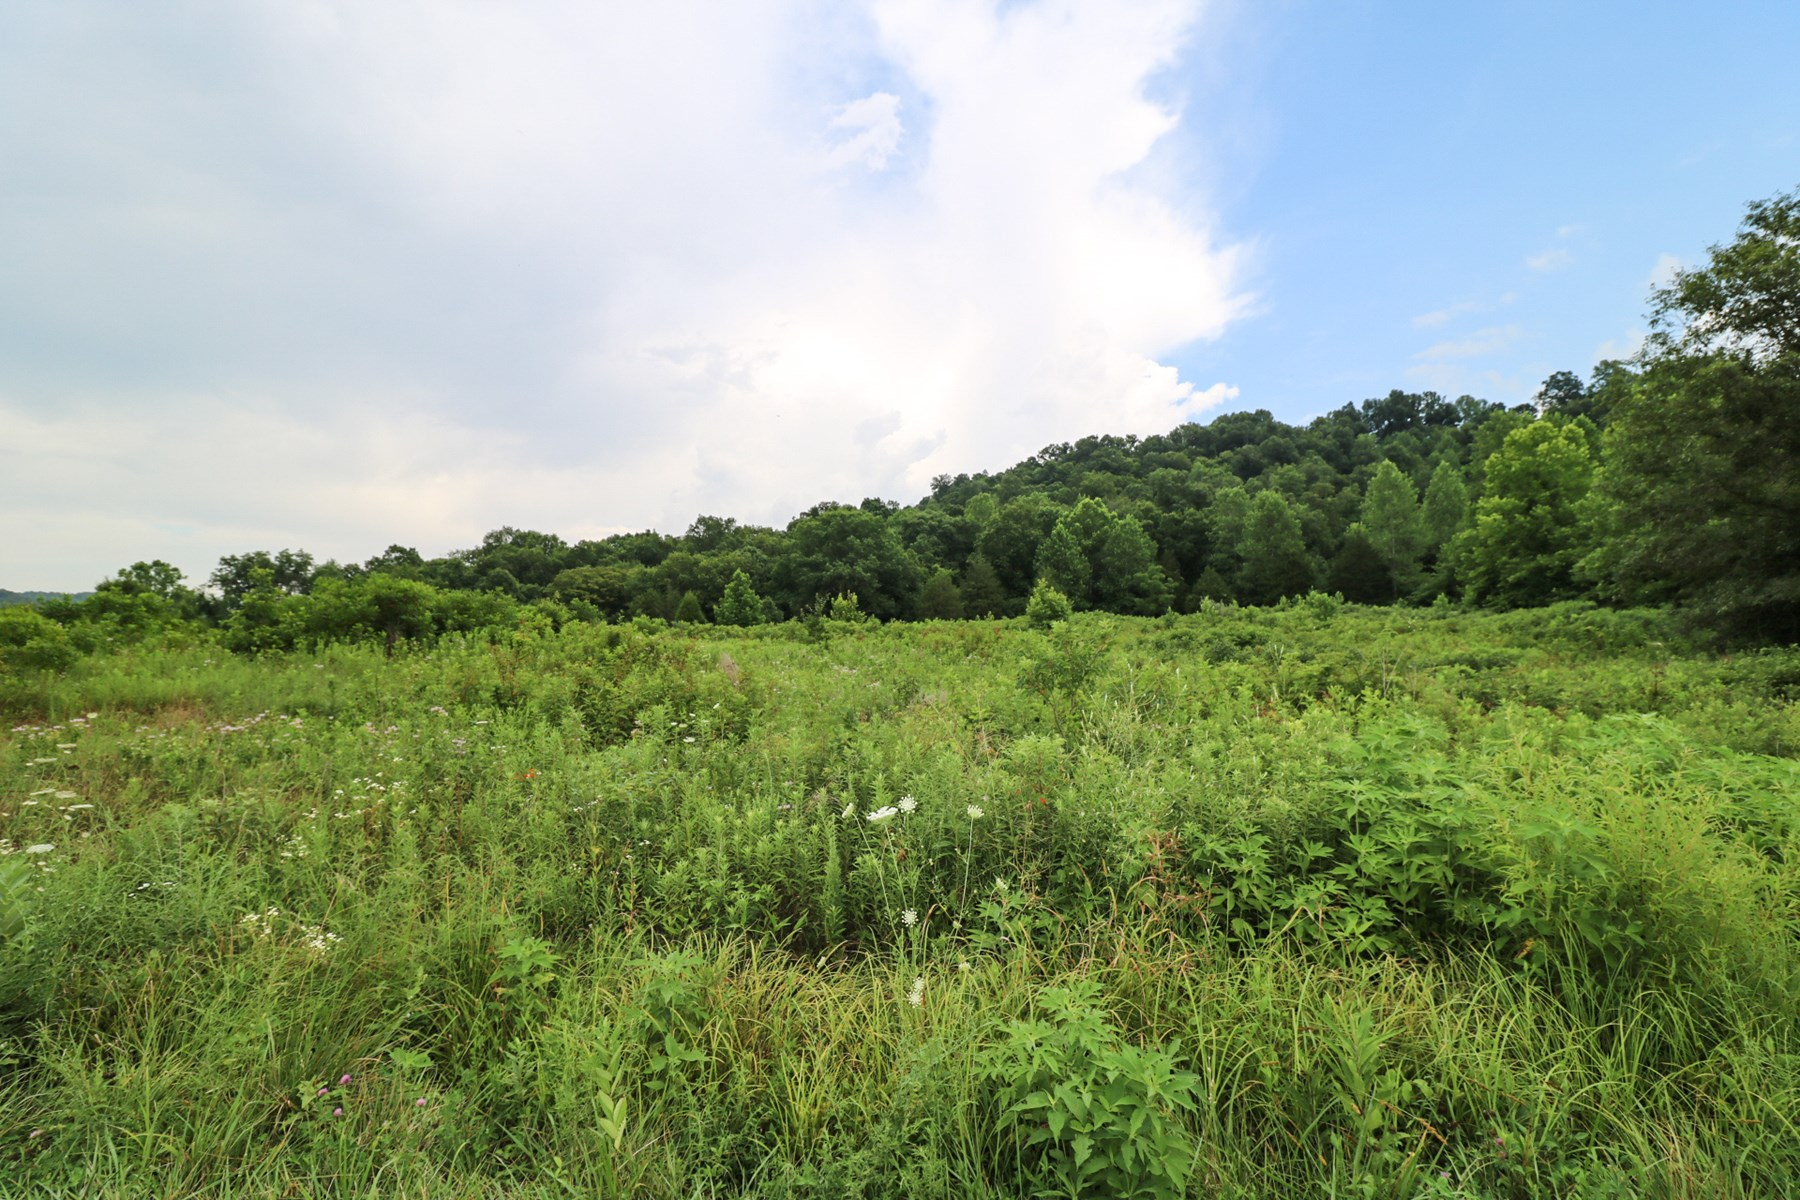 Farmland or Hunting land for sale in Kentucky